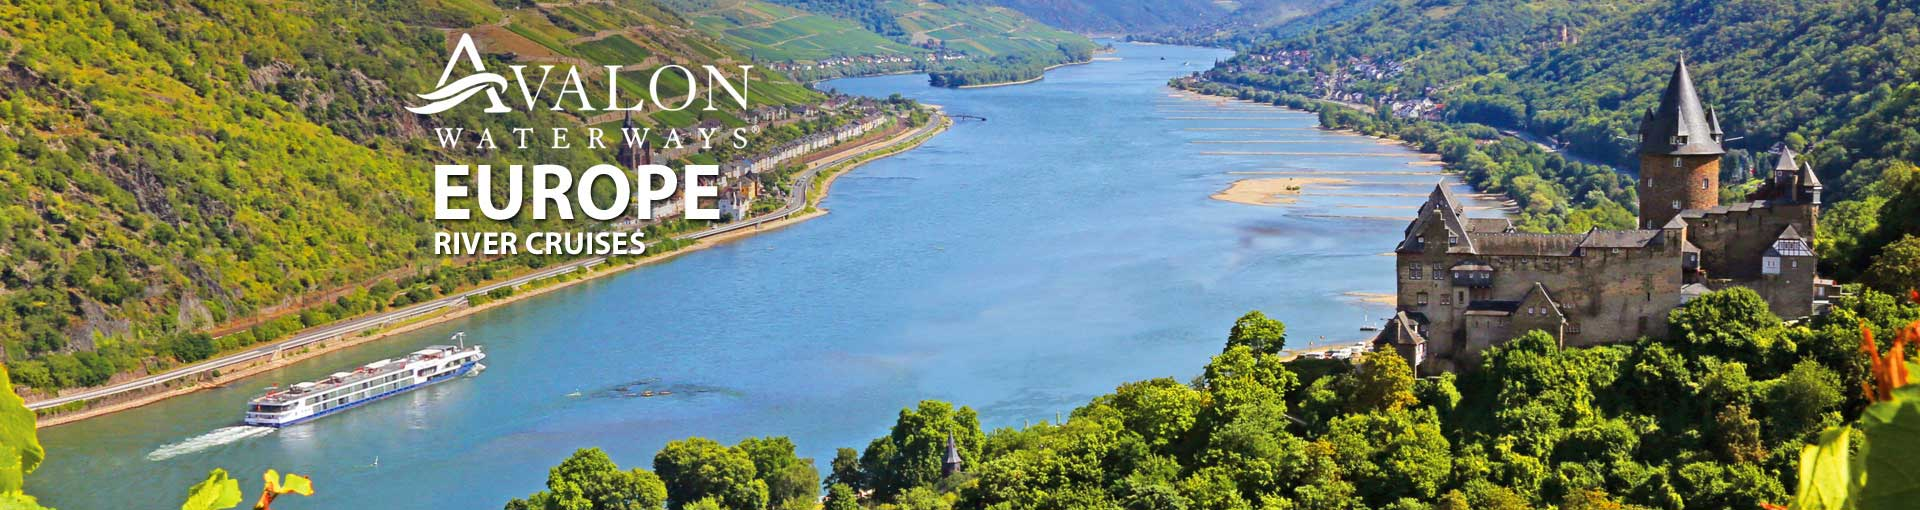 Avalon Waterways River Cruises Europe